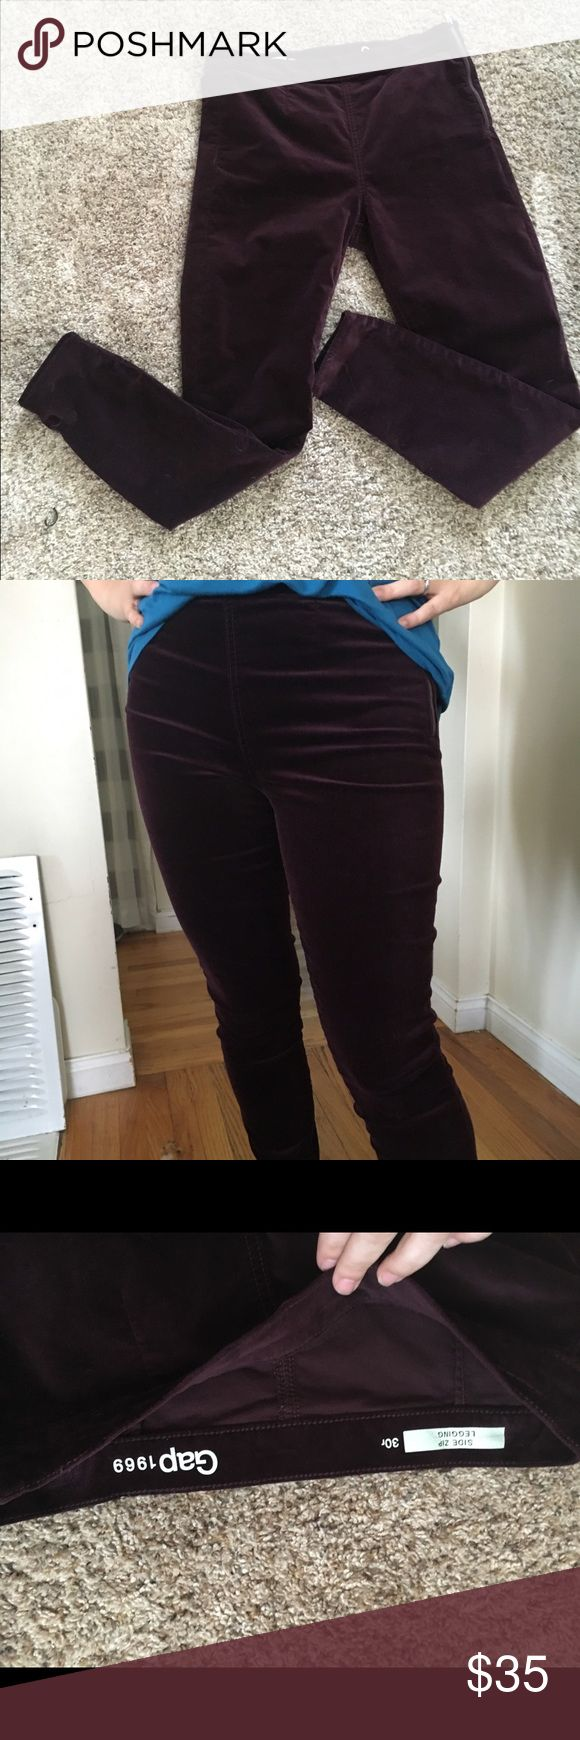 """Gap velvet maroon burgundy skinny legging pants 30 Why I getting rid of these side zip leggings? I know they fit perfectly. I am generally an 8 or 10p, and these are a size 30. I am a big fan of the program called """"dressing your truth"""" and I'm realizing this is just not my color. Is it yours?  Bundle for 30% off!  Also, I am 5'4"""", 135 lbs and these are perfecto!  28 inch ankle length inseam, but on me they aren't an ankle fit :) GAP Pants Skinny"""